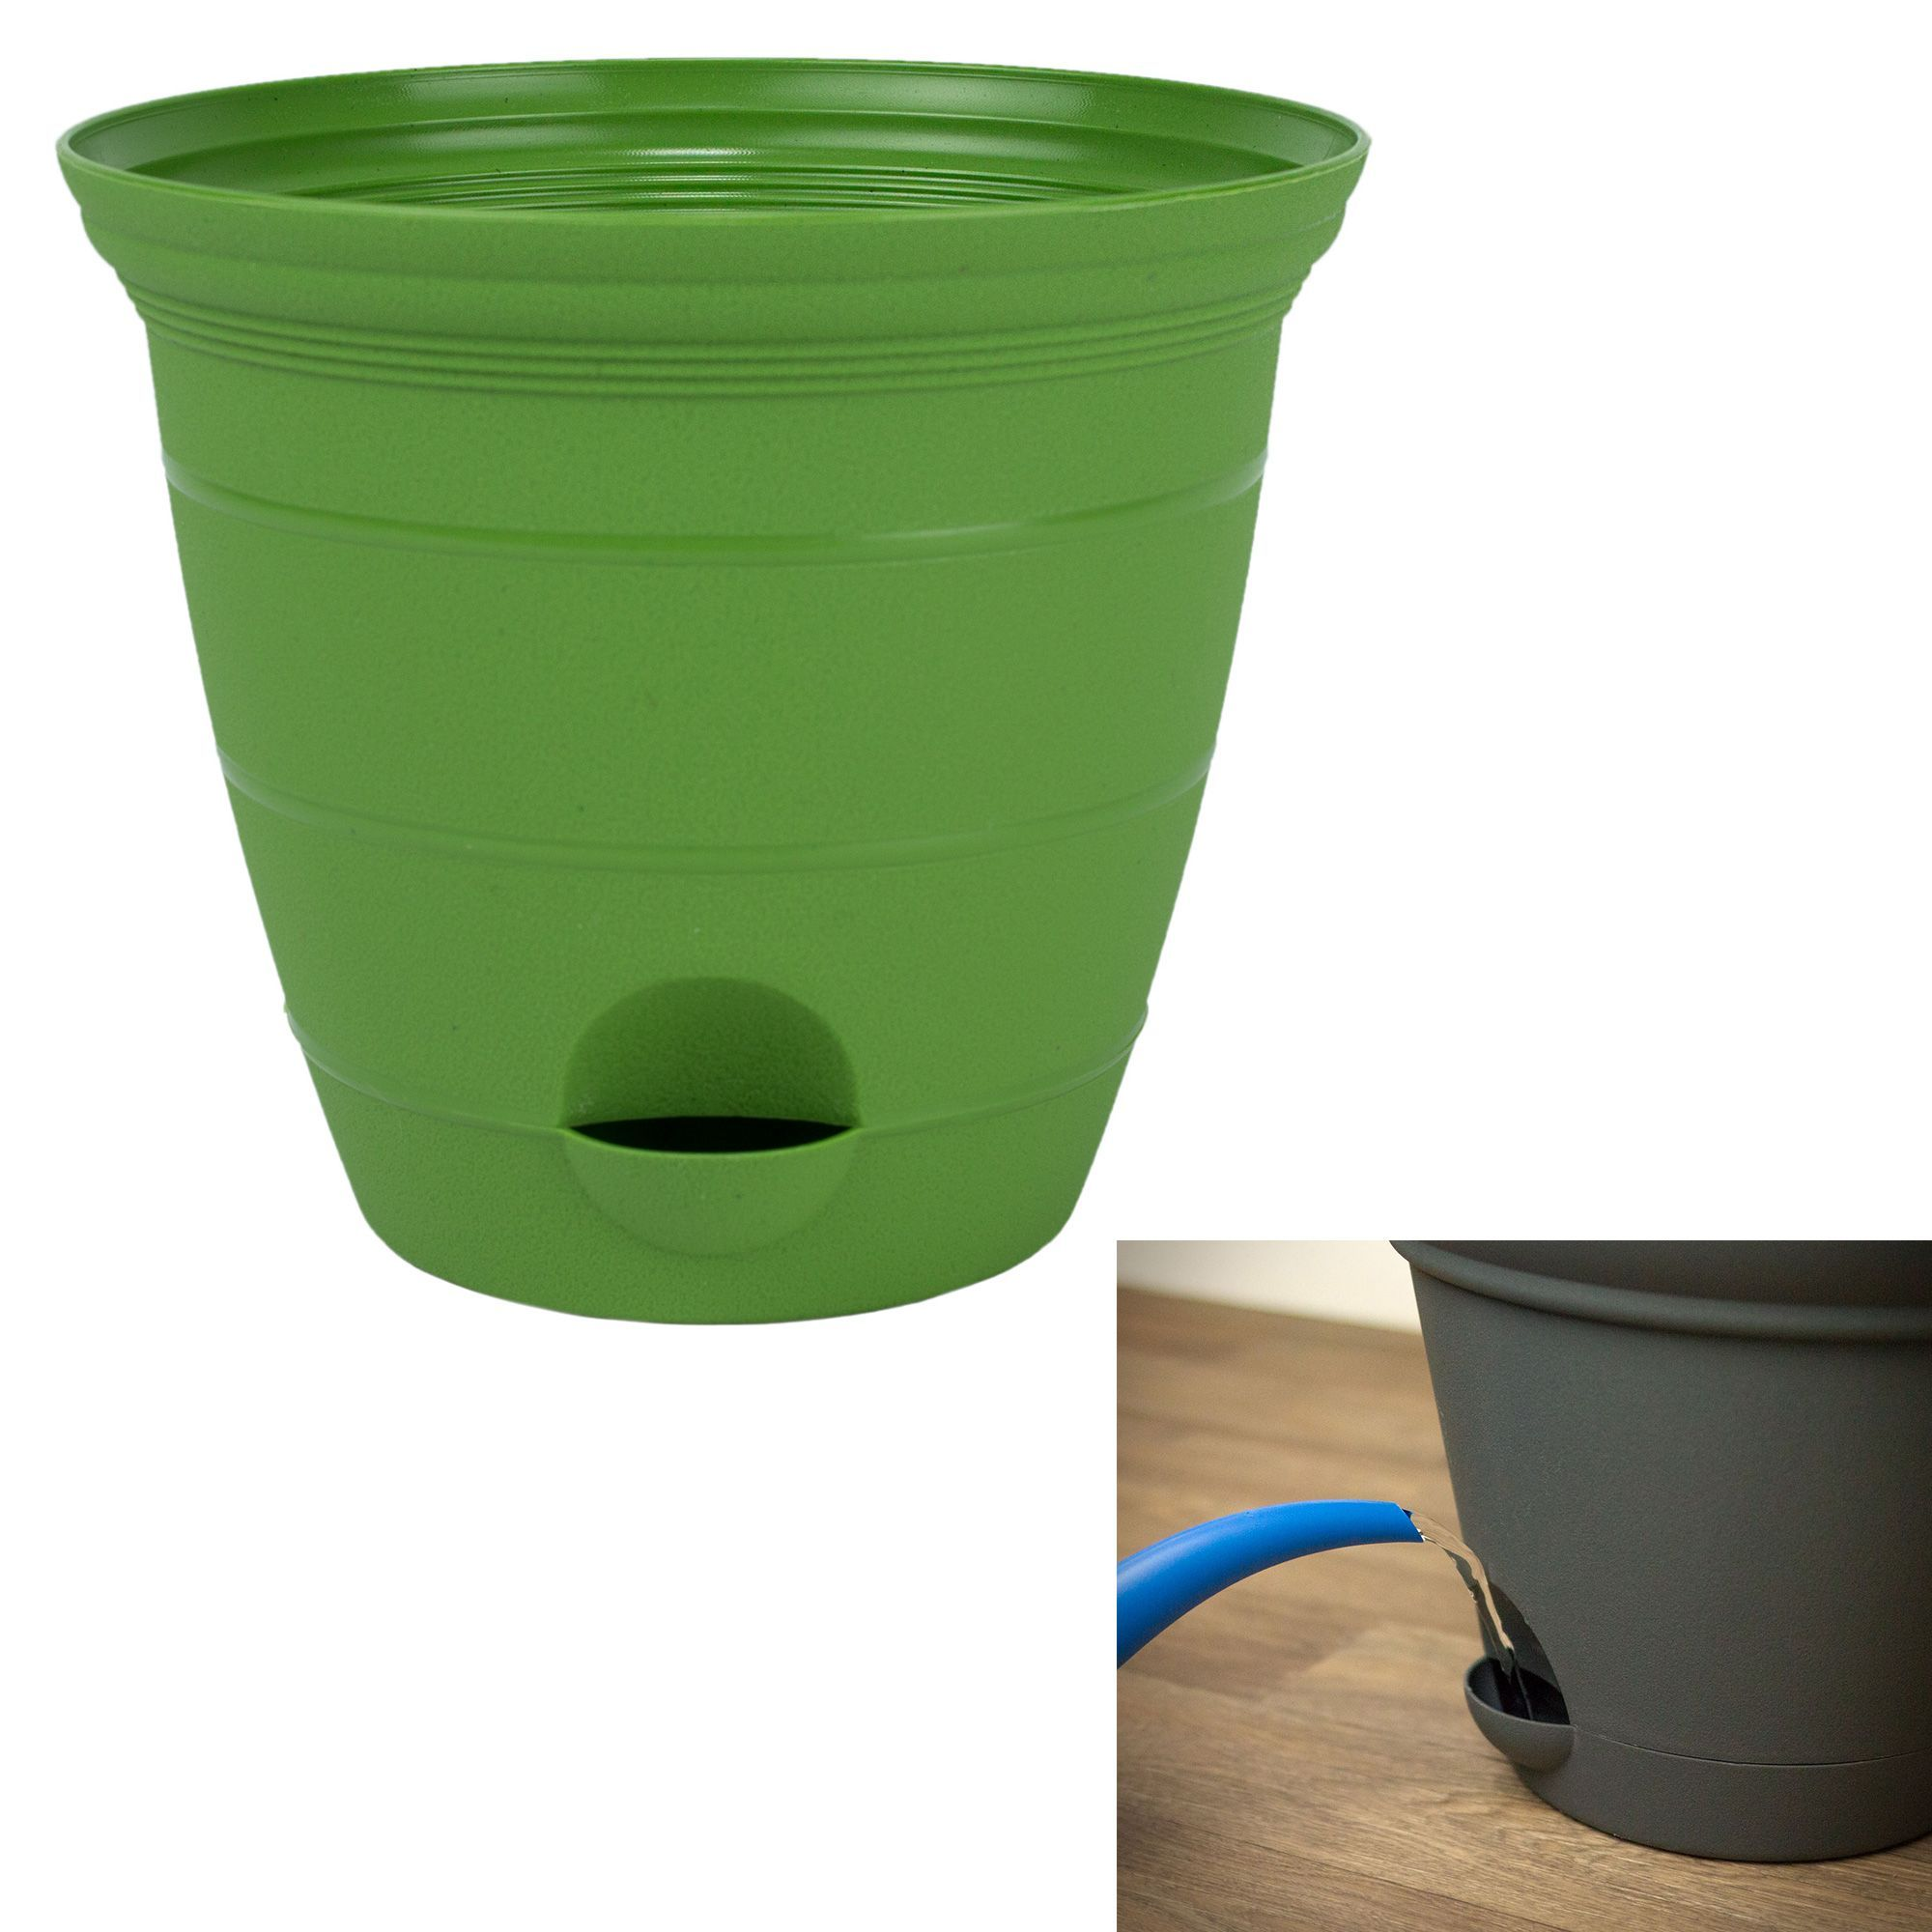 Misco 12 Inch Plastic Self Watering Terra Flower Plant Pot Garden Potted Planter Green Planting Flowers Garden Pots Water Flowers